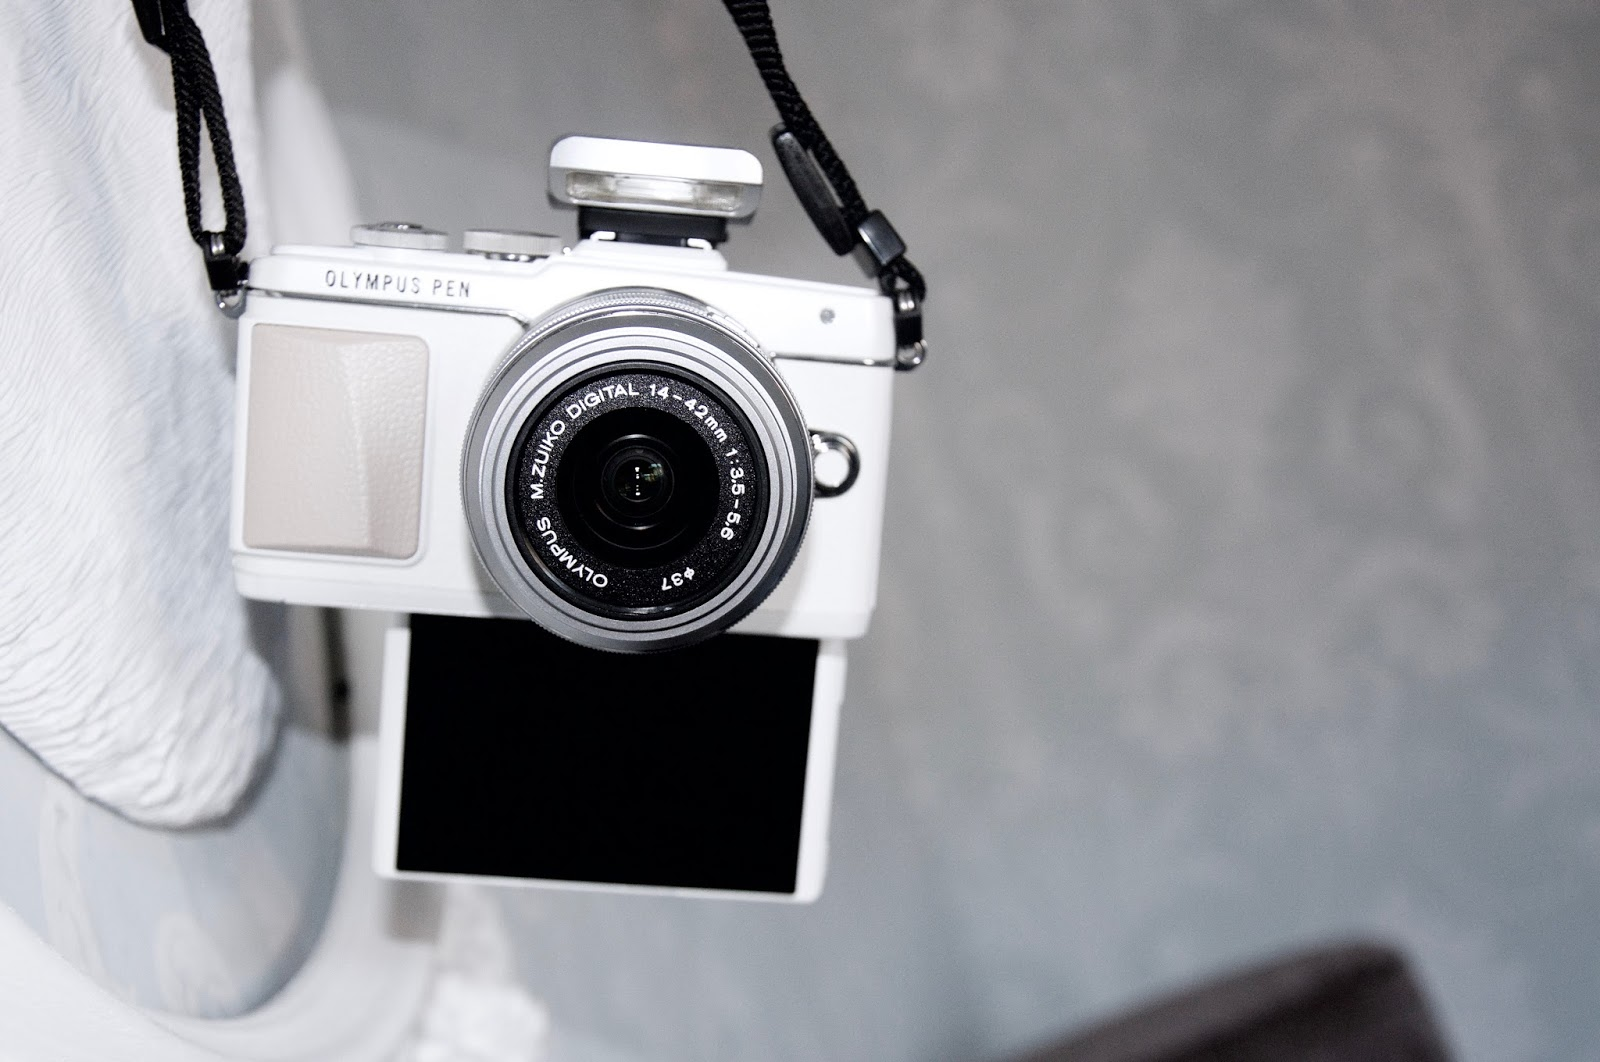 THE OLYMPUS PEN E-PL7 CAMERA, MY NEWEST STYLE GEM BESTFRIEND